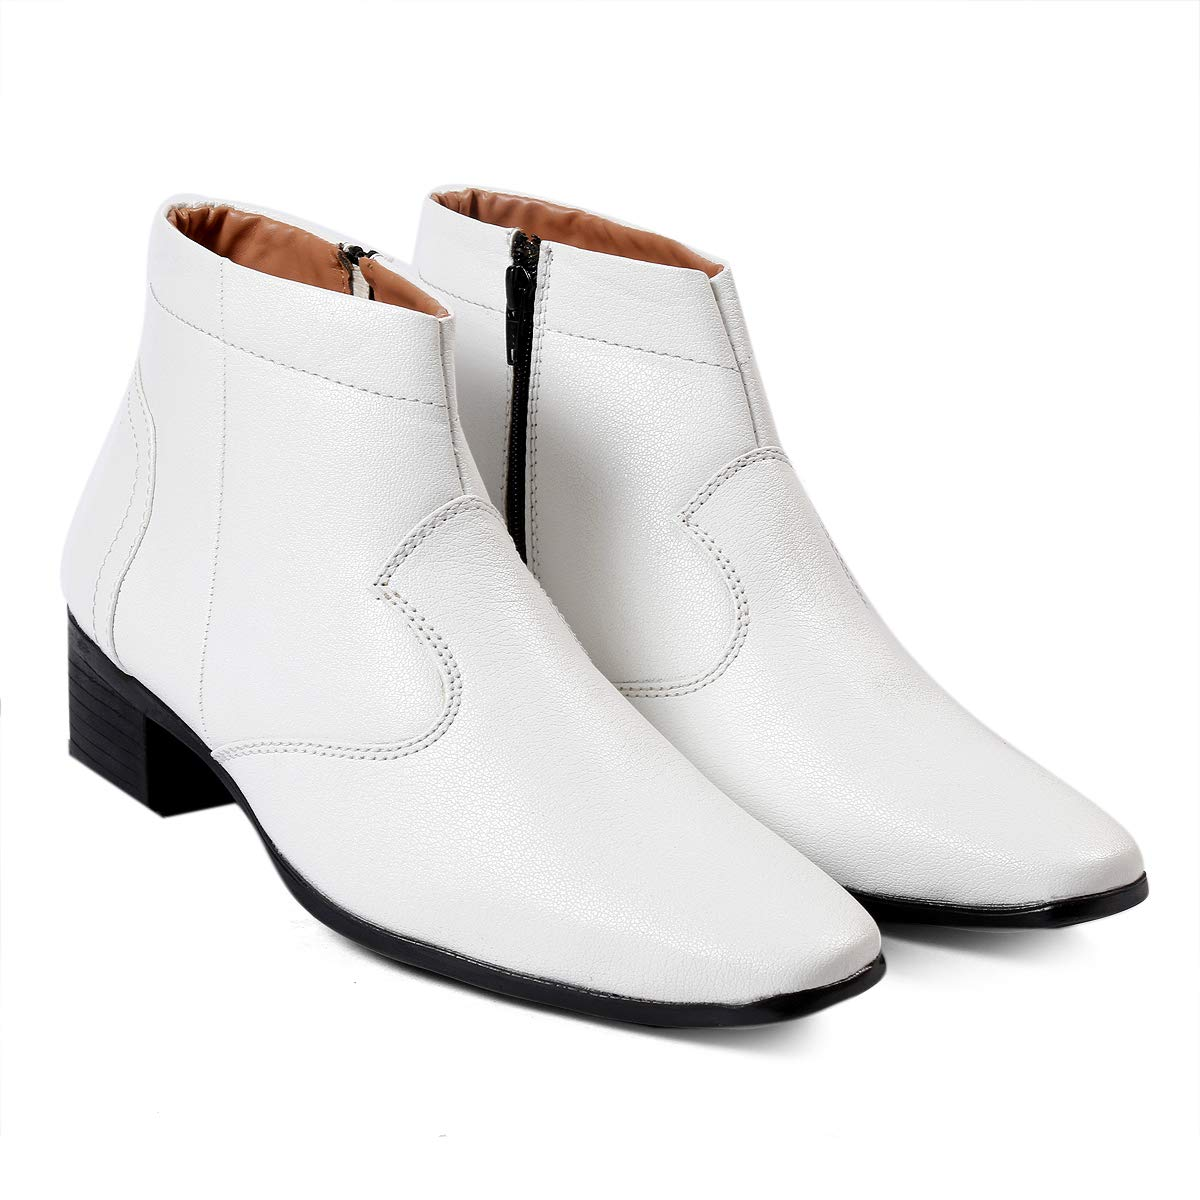 BXXY Mens White Faux Leather Height